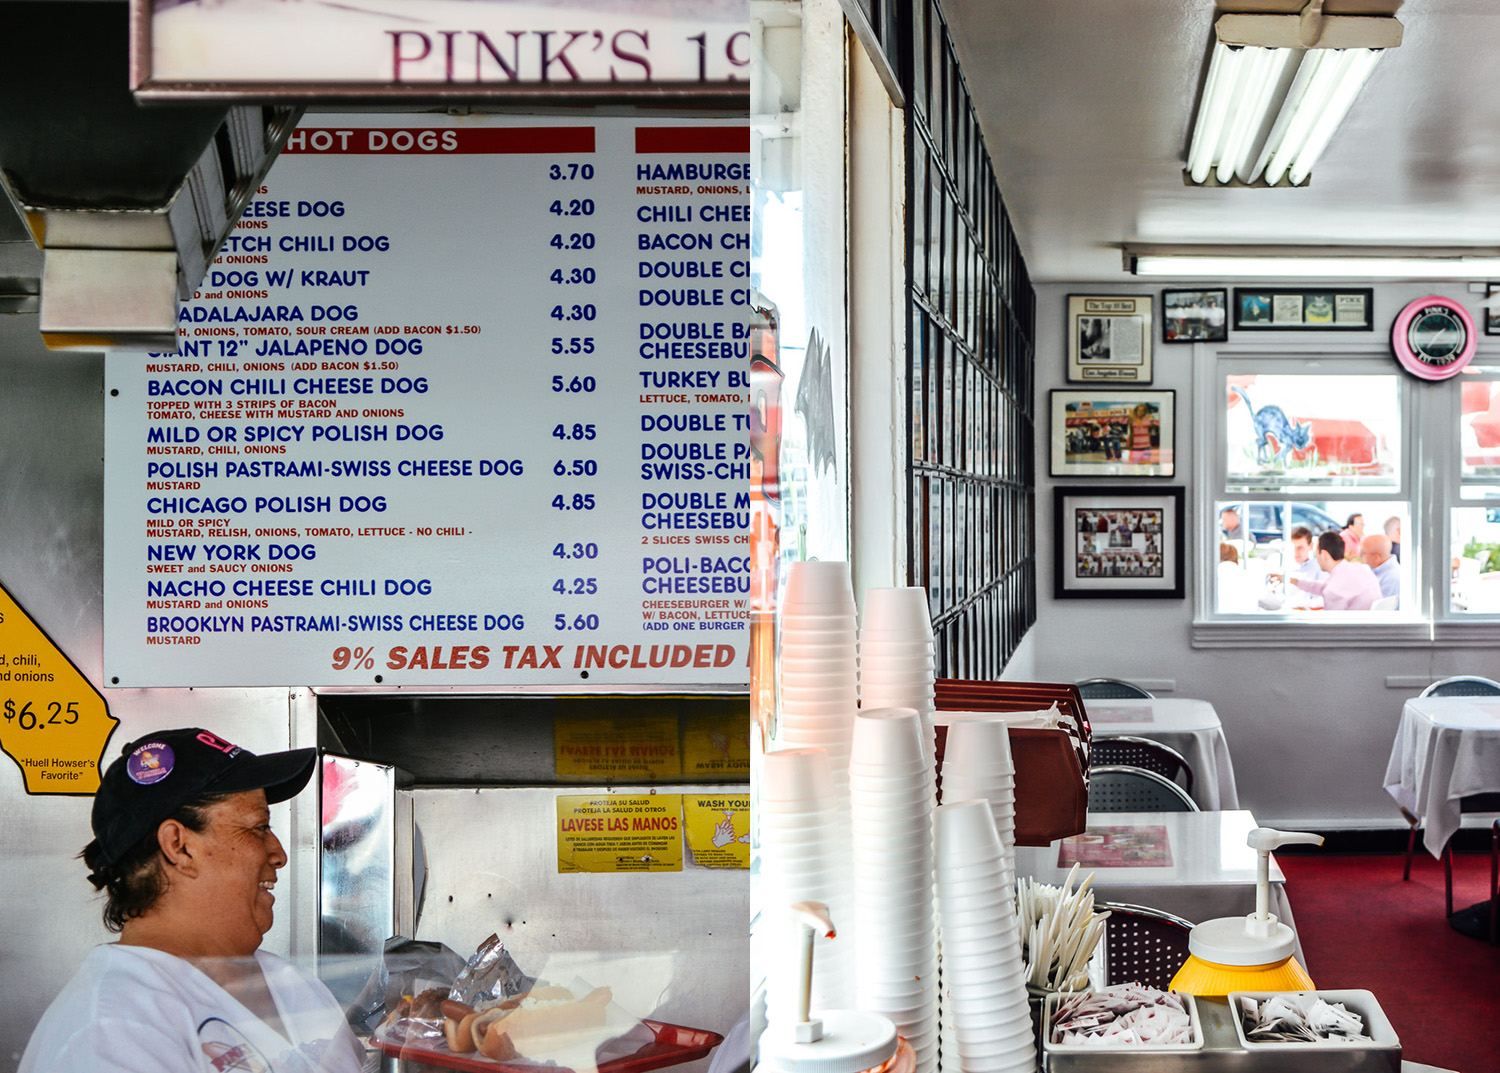 pinks-hot-dog-los-angeles-california-weekend-01